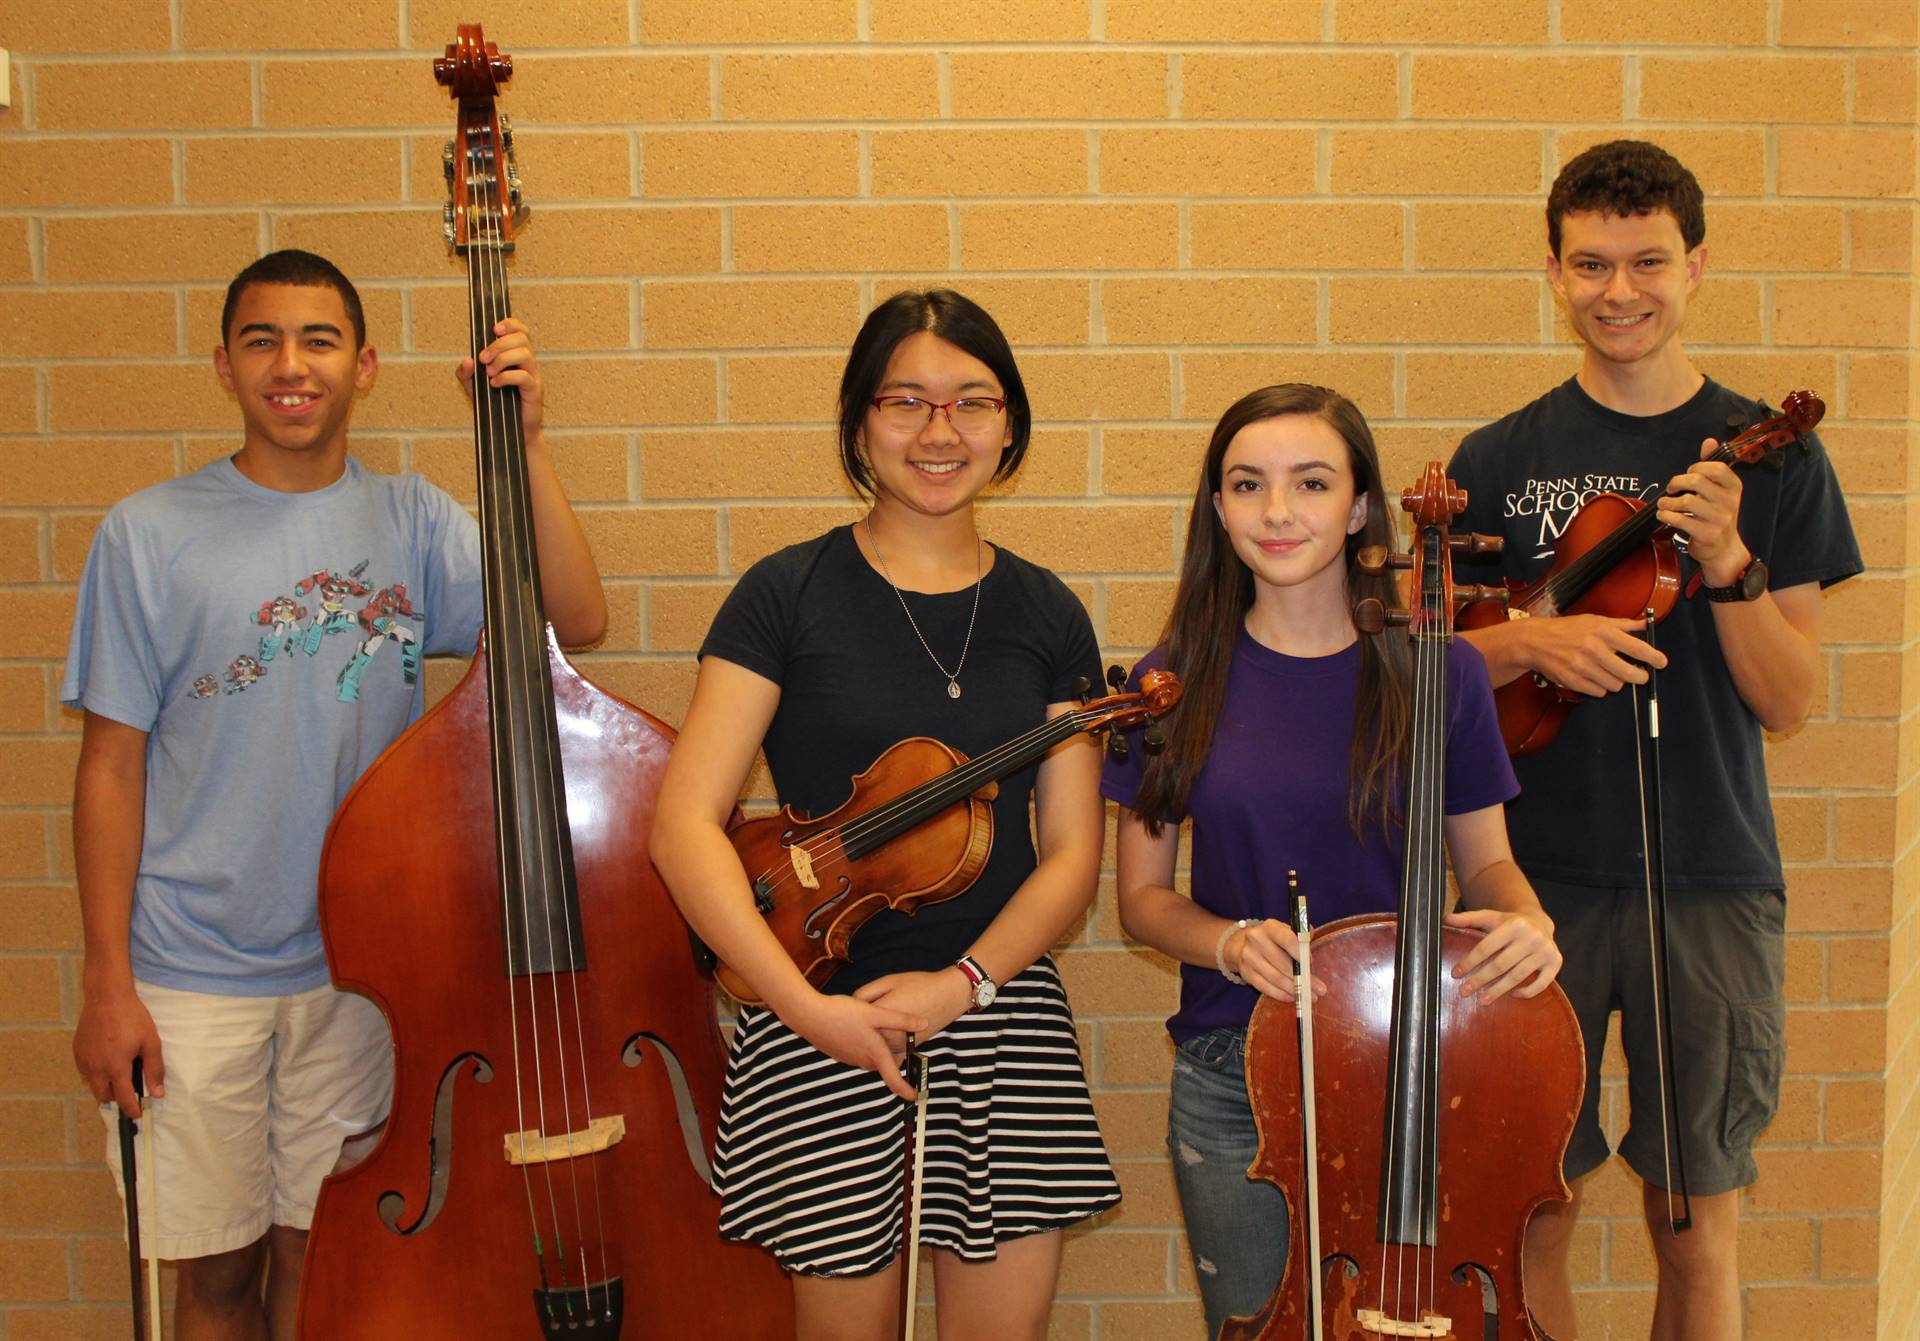 BPHS Honors Orchestra Students